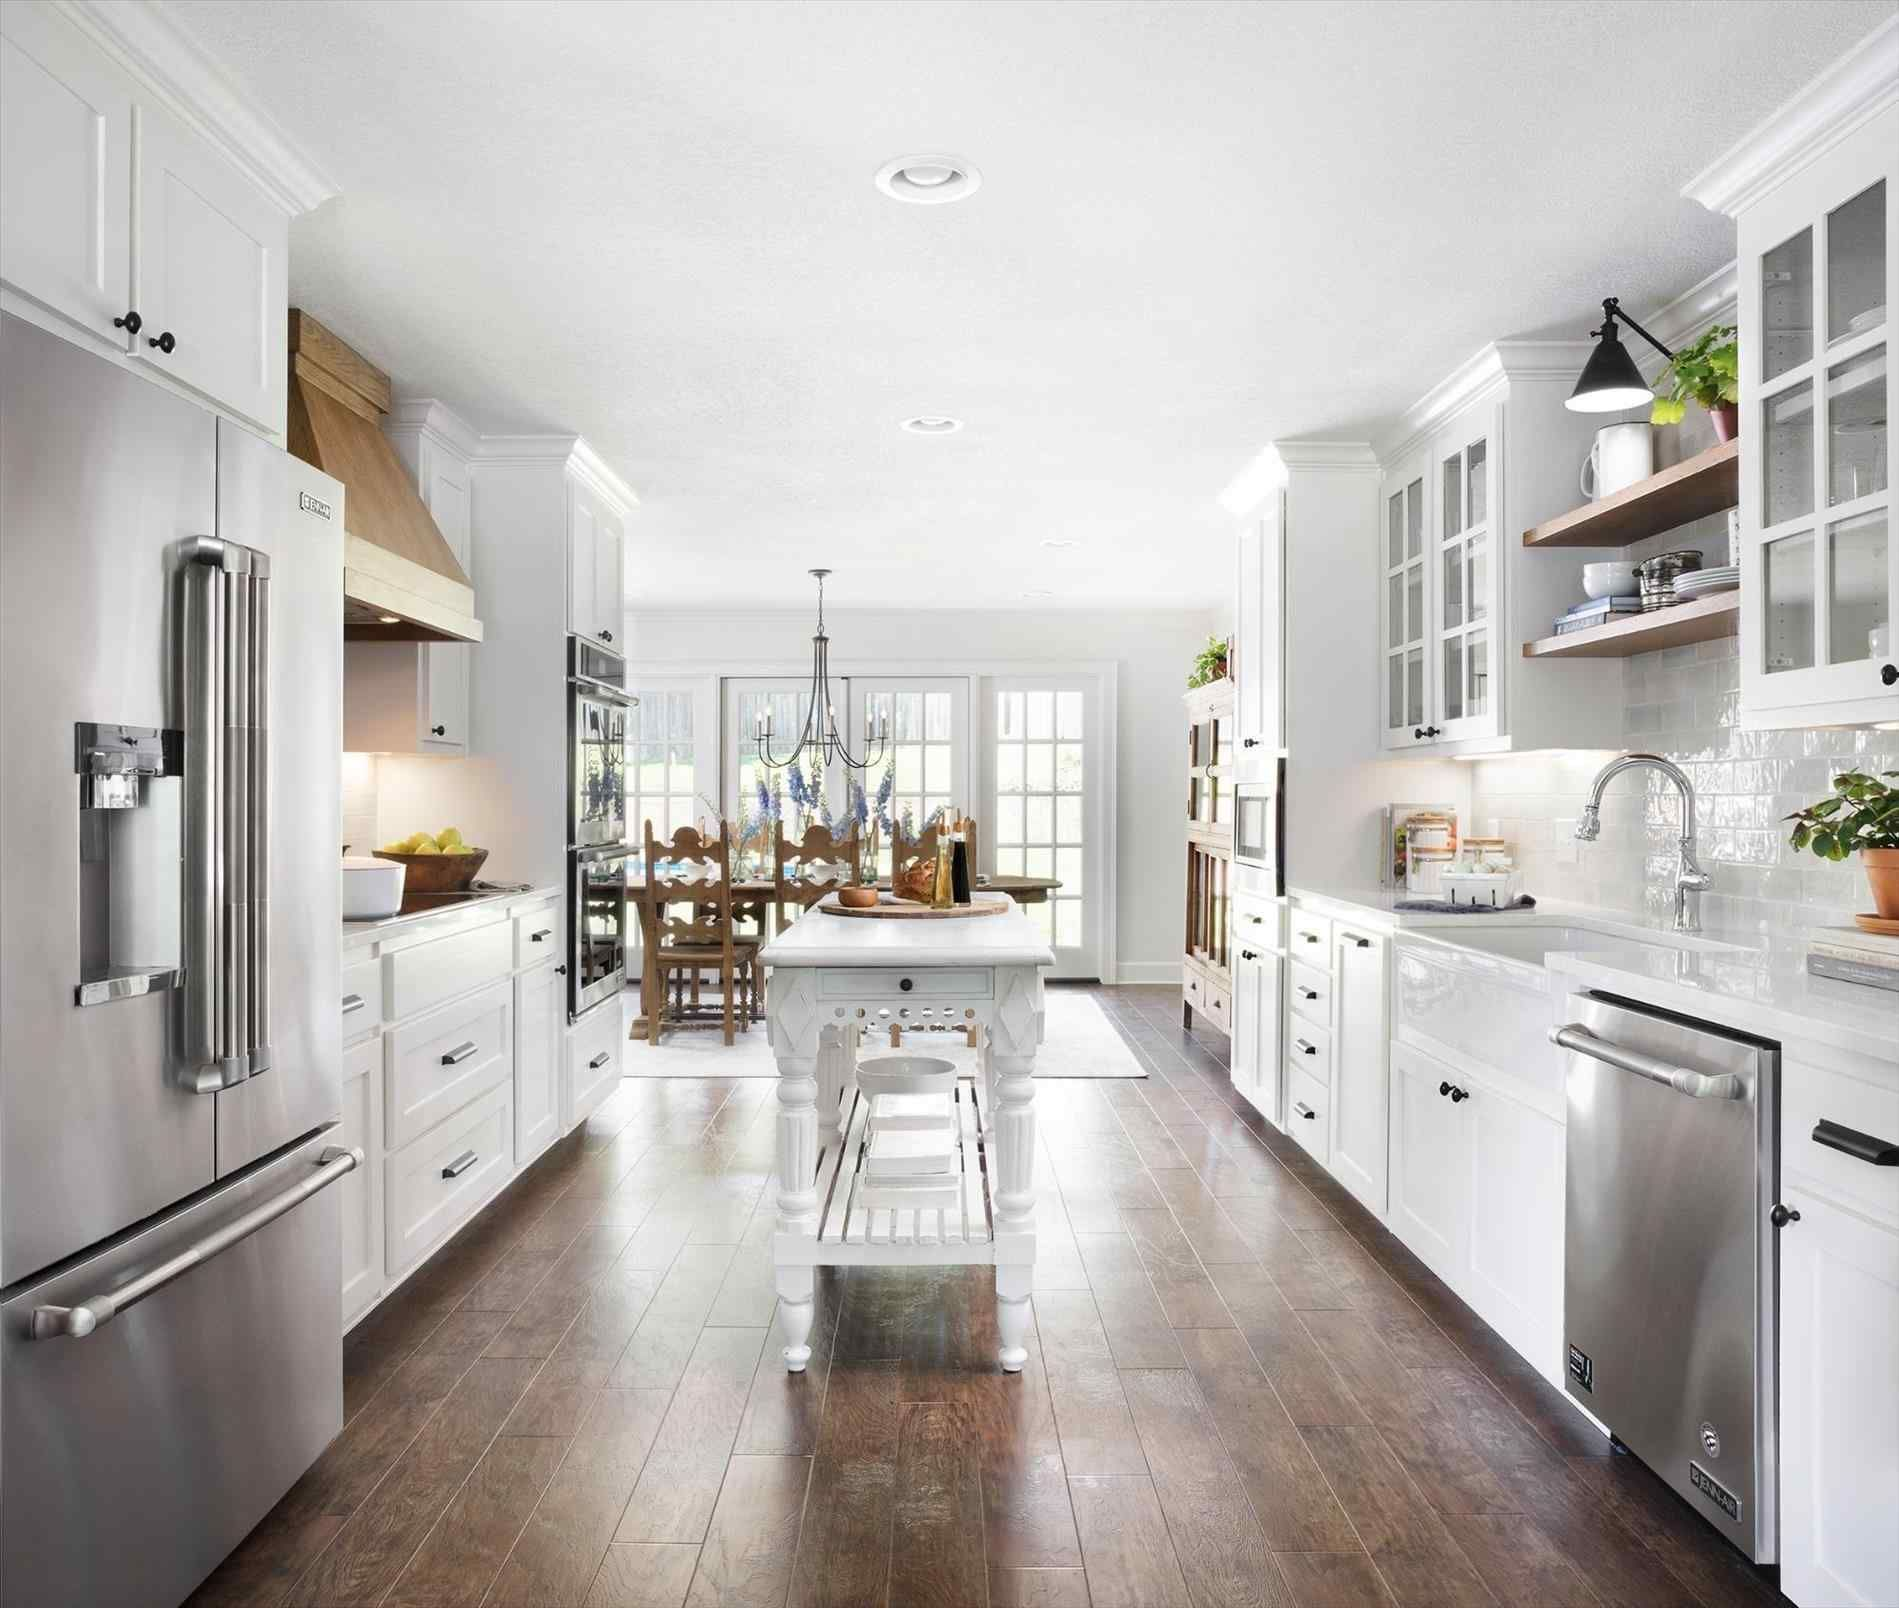 image result for magnolia farms kitchen kitchen layout galley kitchen layout kitchen layouts on kitchen layout ideas with island joanna gaines id=85929